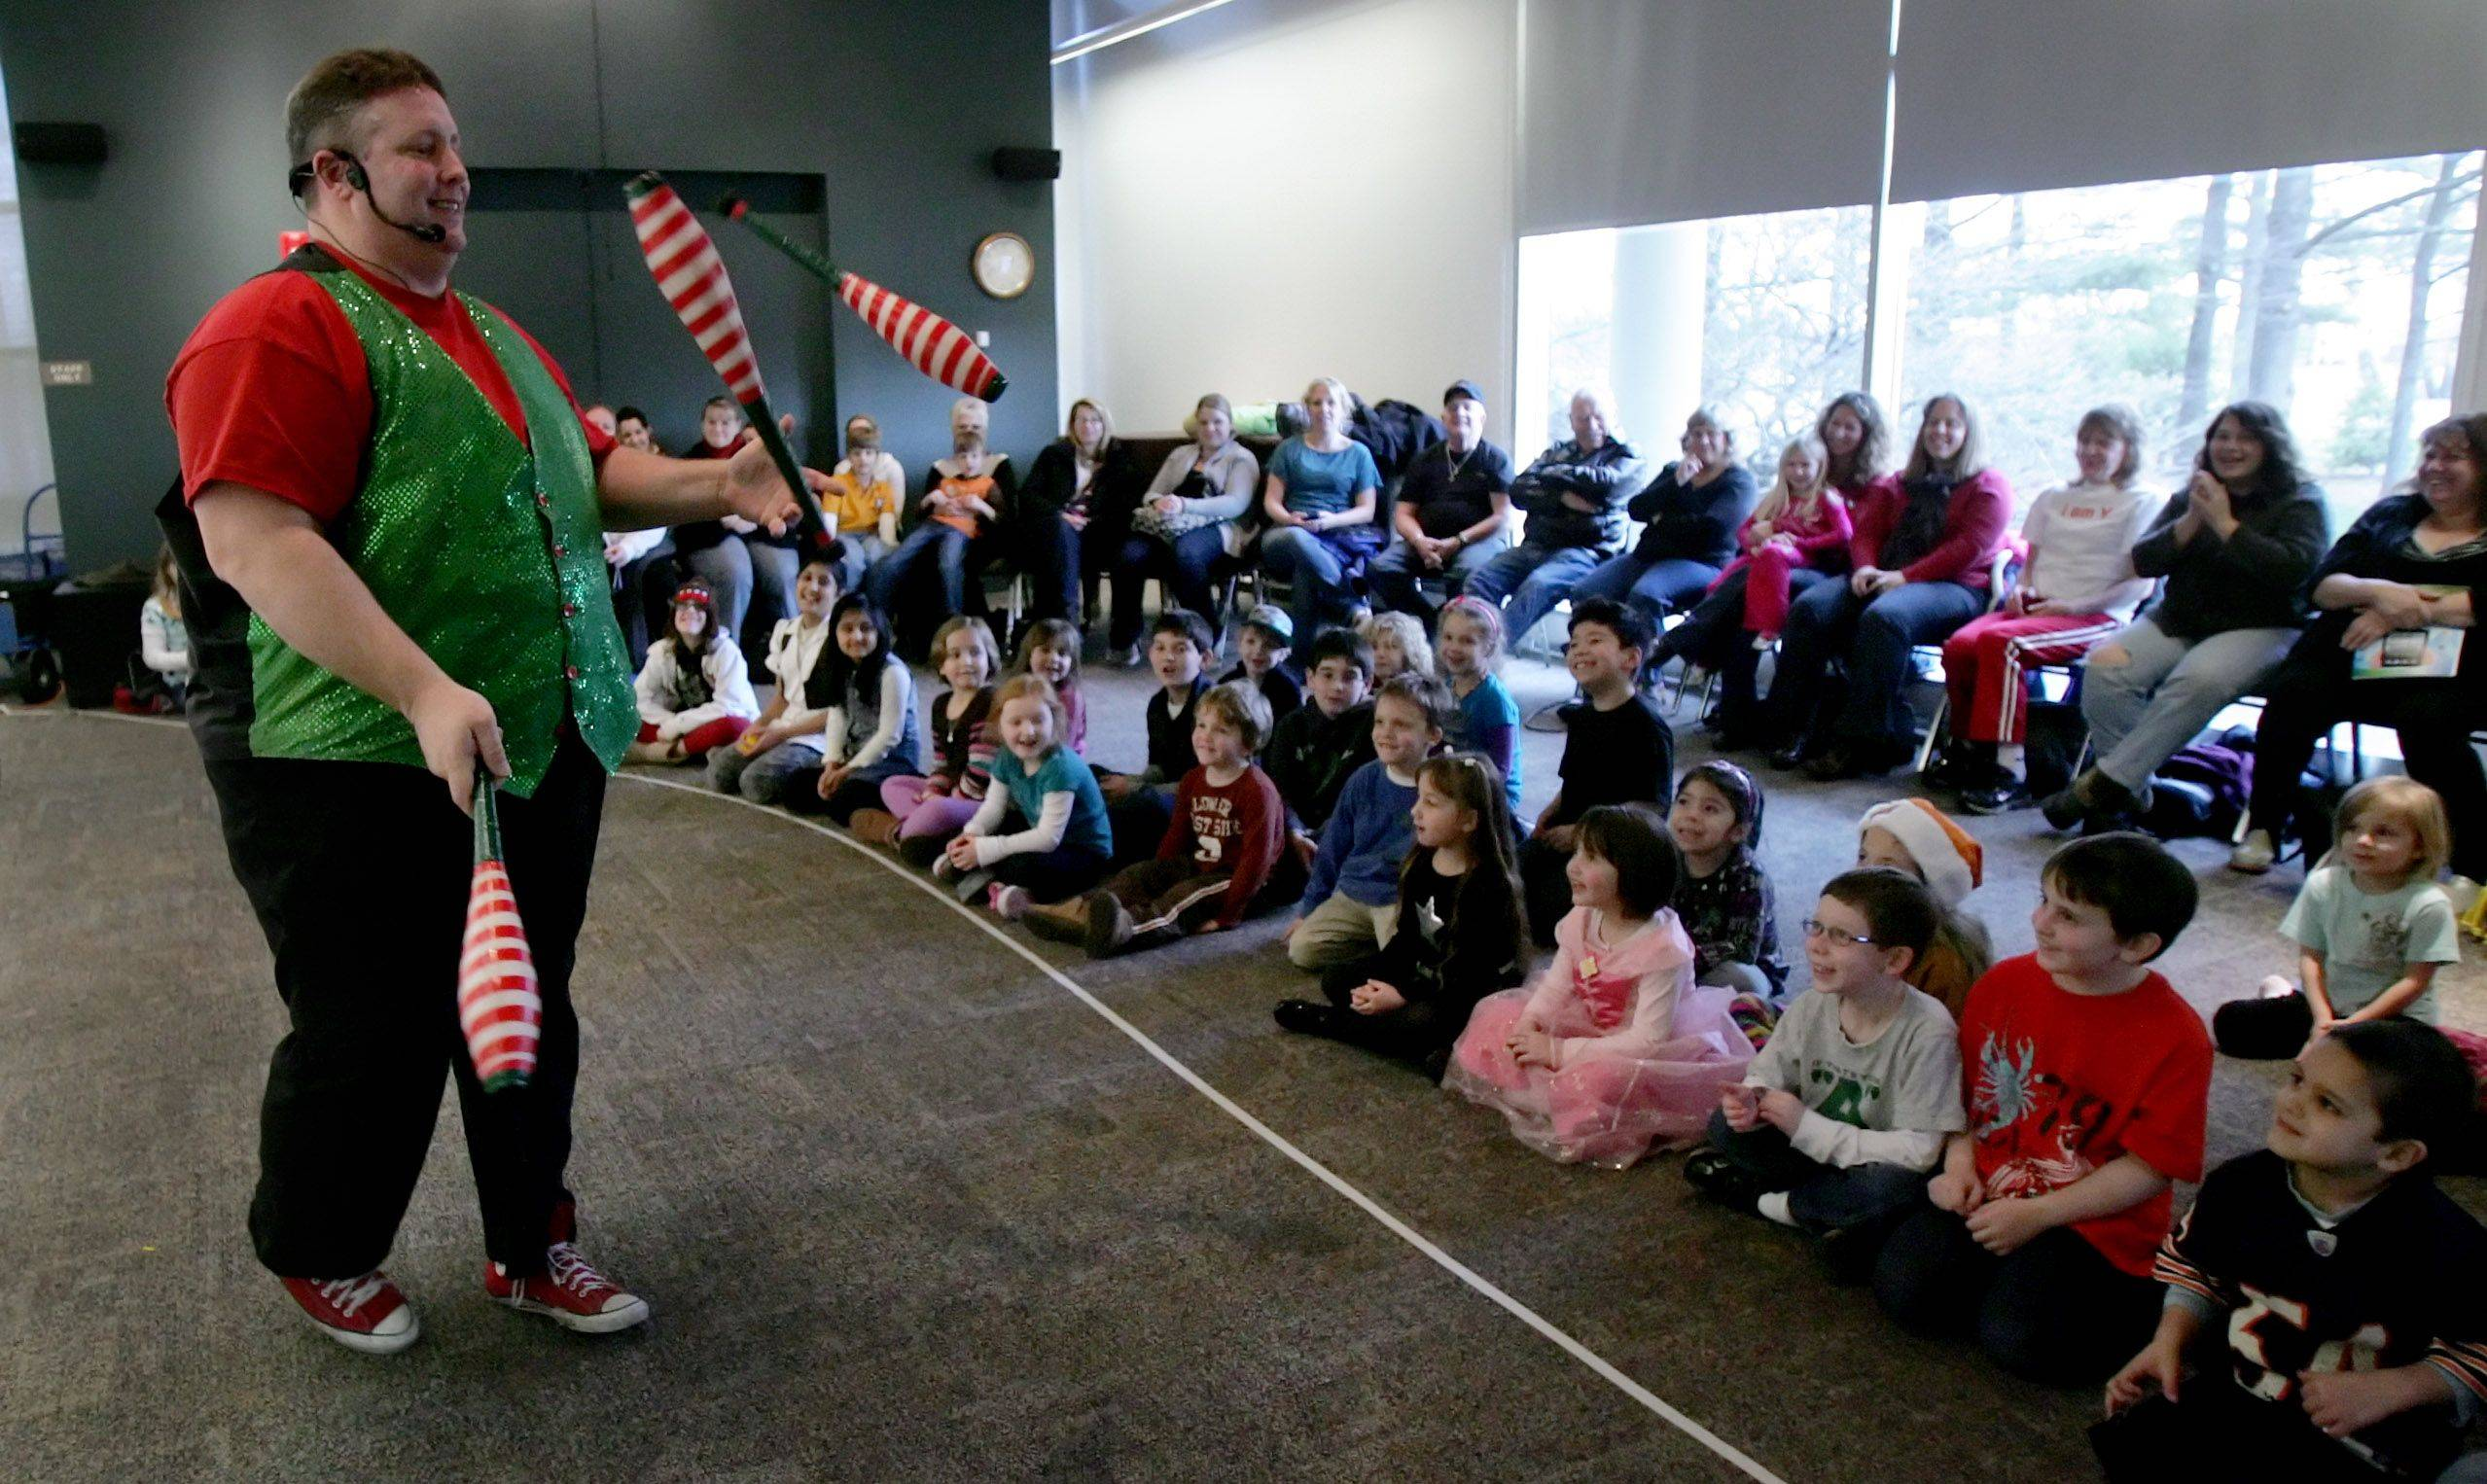 """The Flying Fool"" Ken Schultz juggles as he entertains children and adults with stunts, juggling and balloon animals at the Wauconda Area Library."